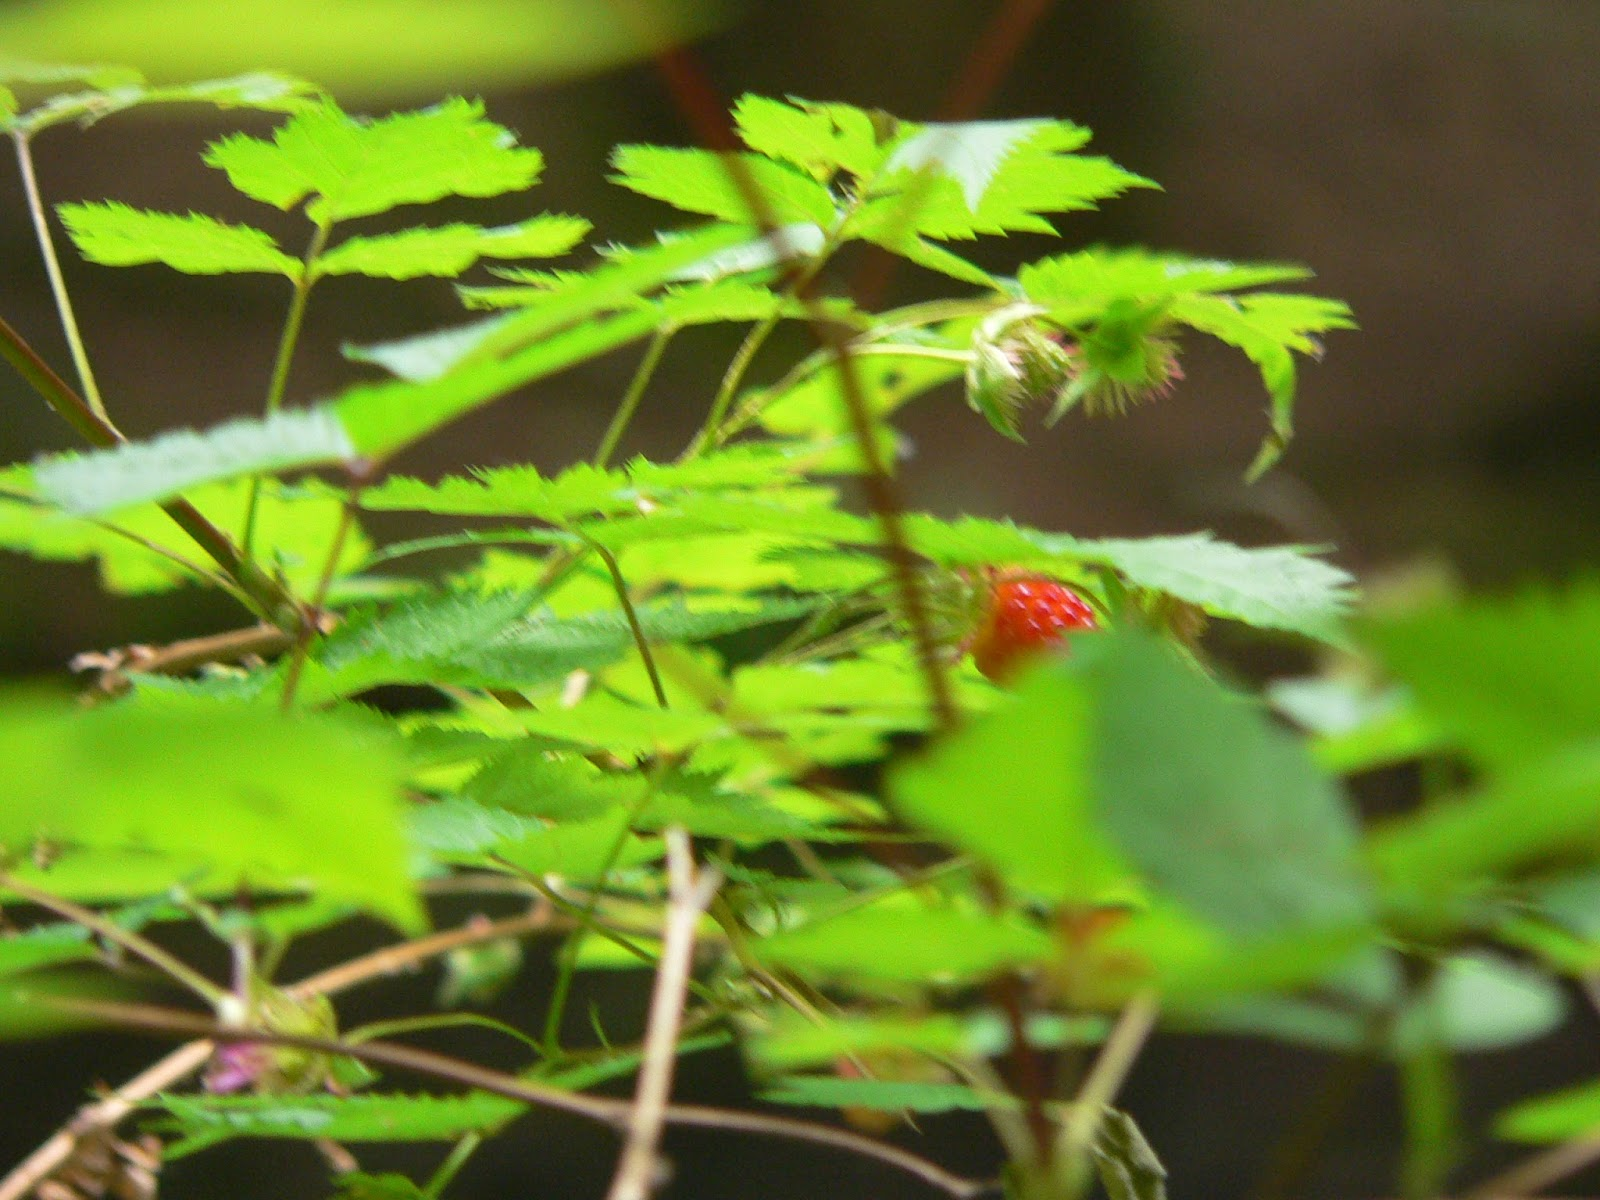 She Led Me Around The Little Body Of Water Introducing To Its Wonders Ferns Salmonberries And A Nursery Log